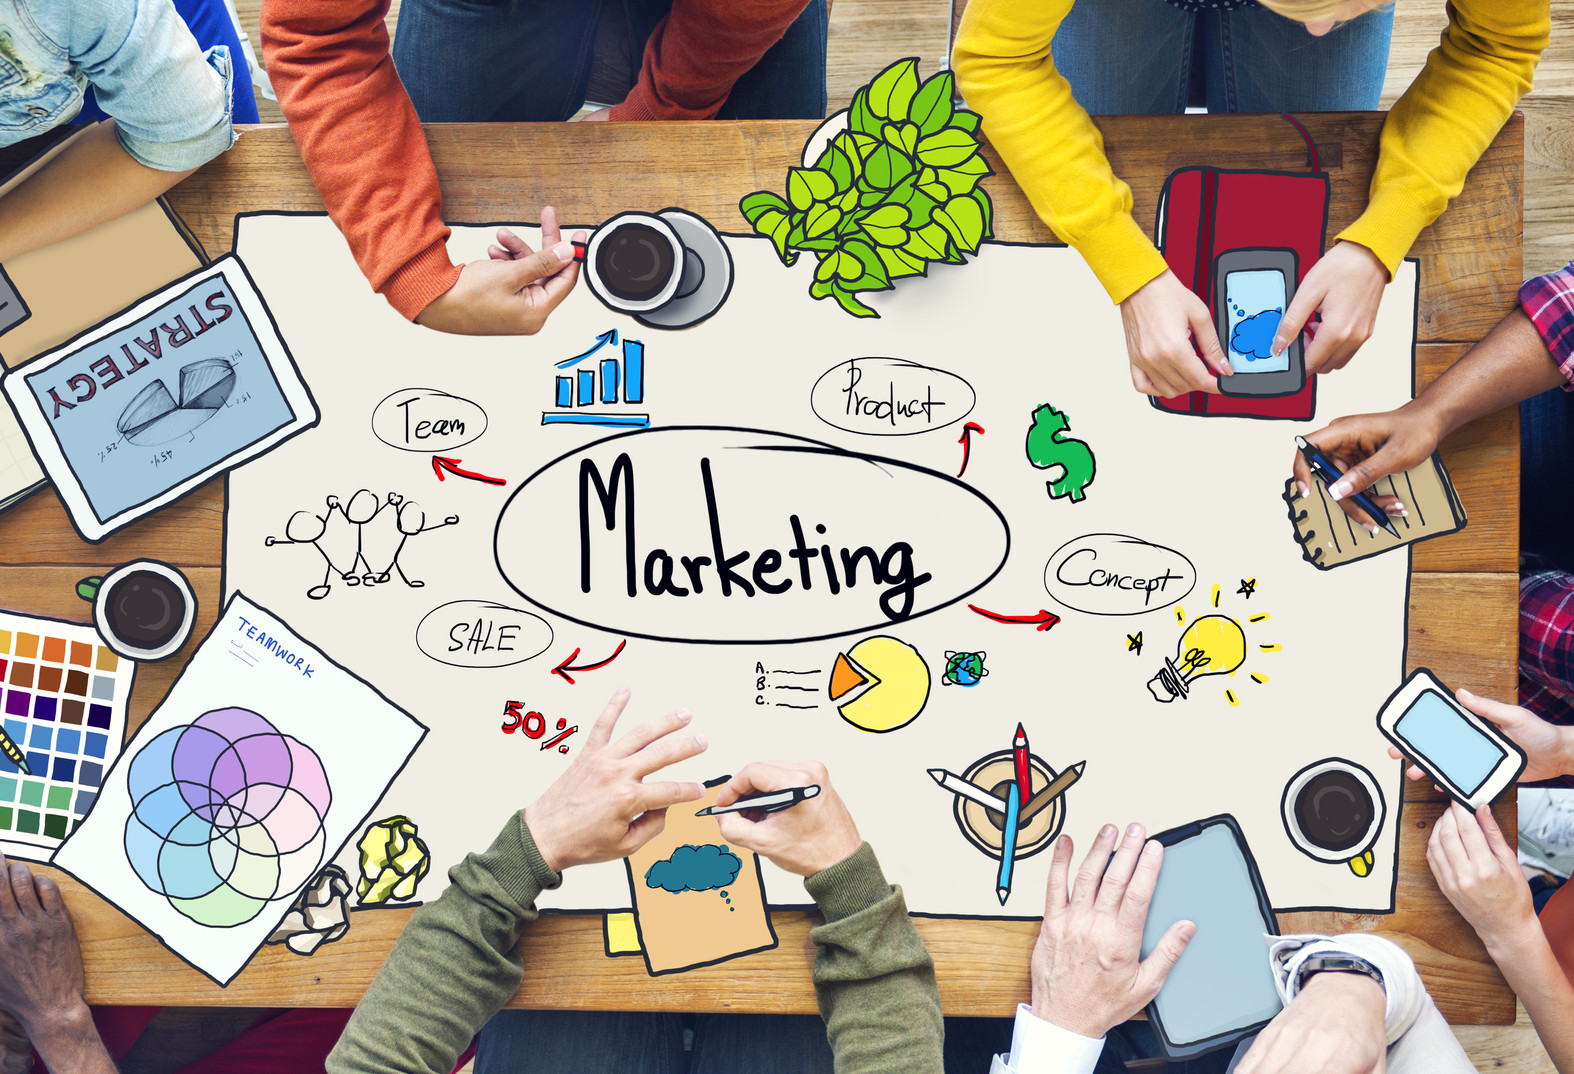 MOOC Summaries - UBC Introduction to Marketing - Diverse People Working and Marketing Concept